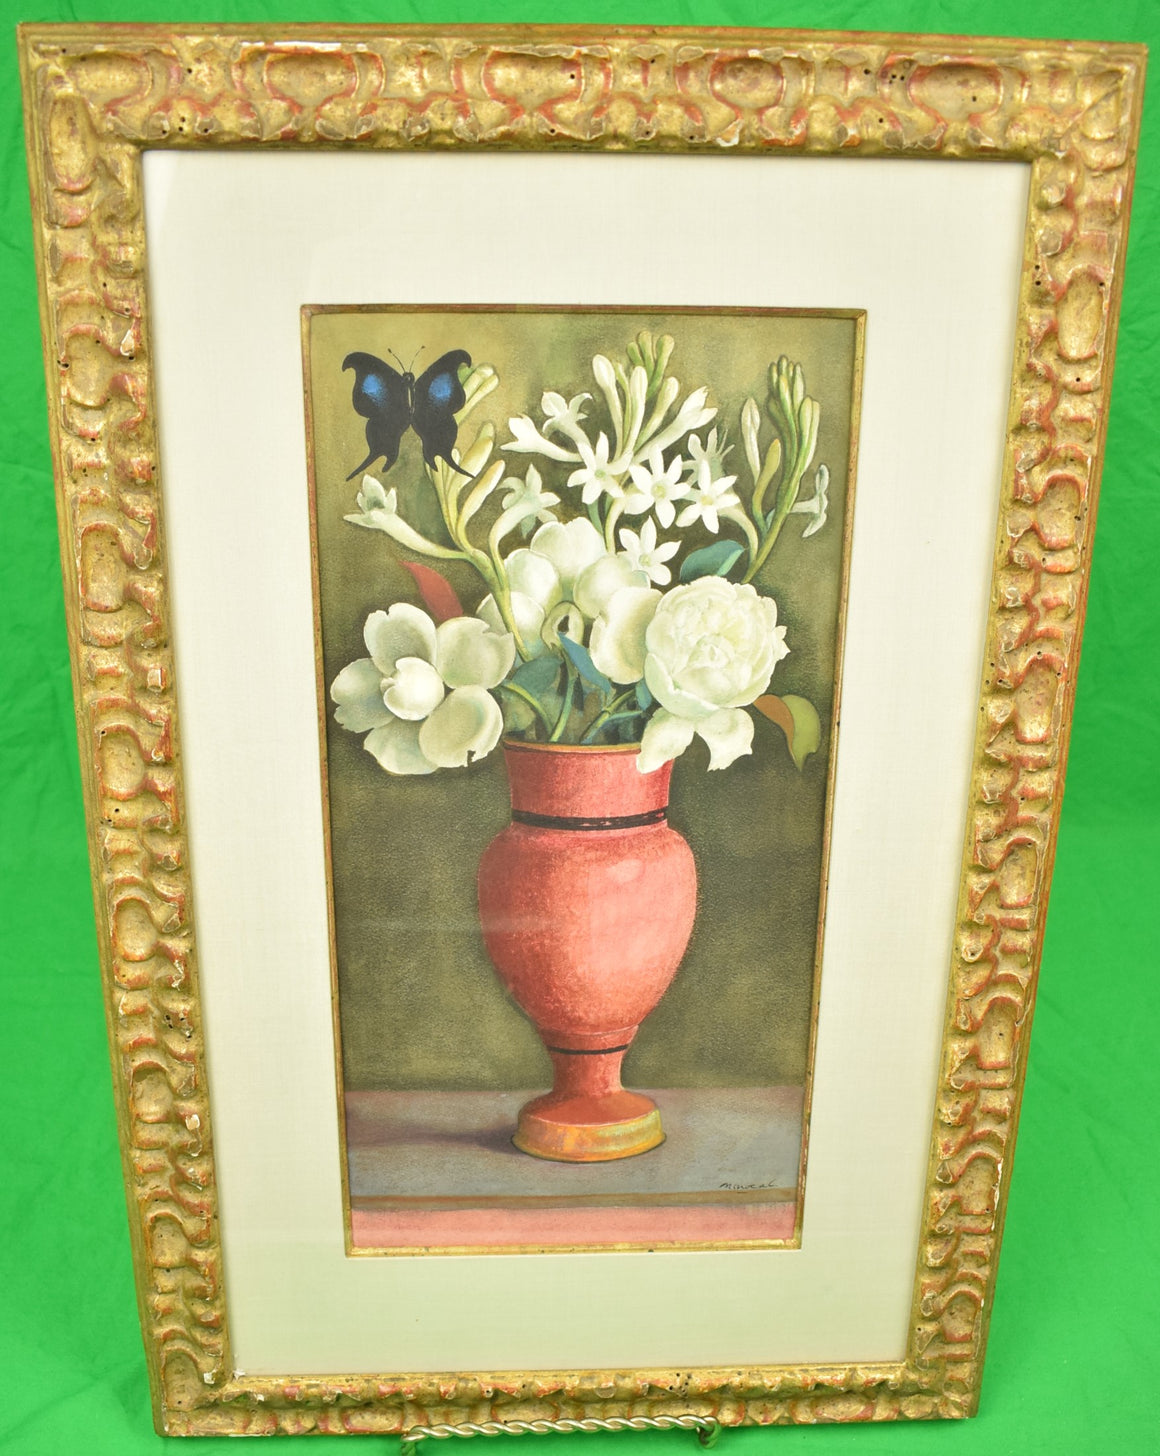 Richard de Menocal Floral Vase Still Life w/ Butterfly Oil on Canvas